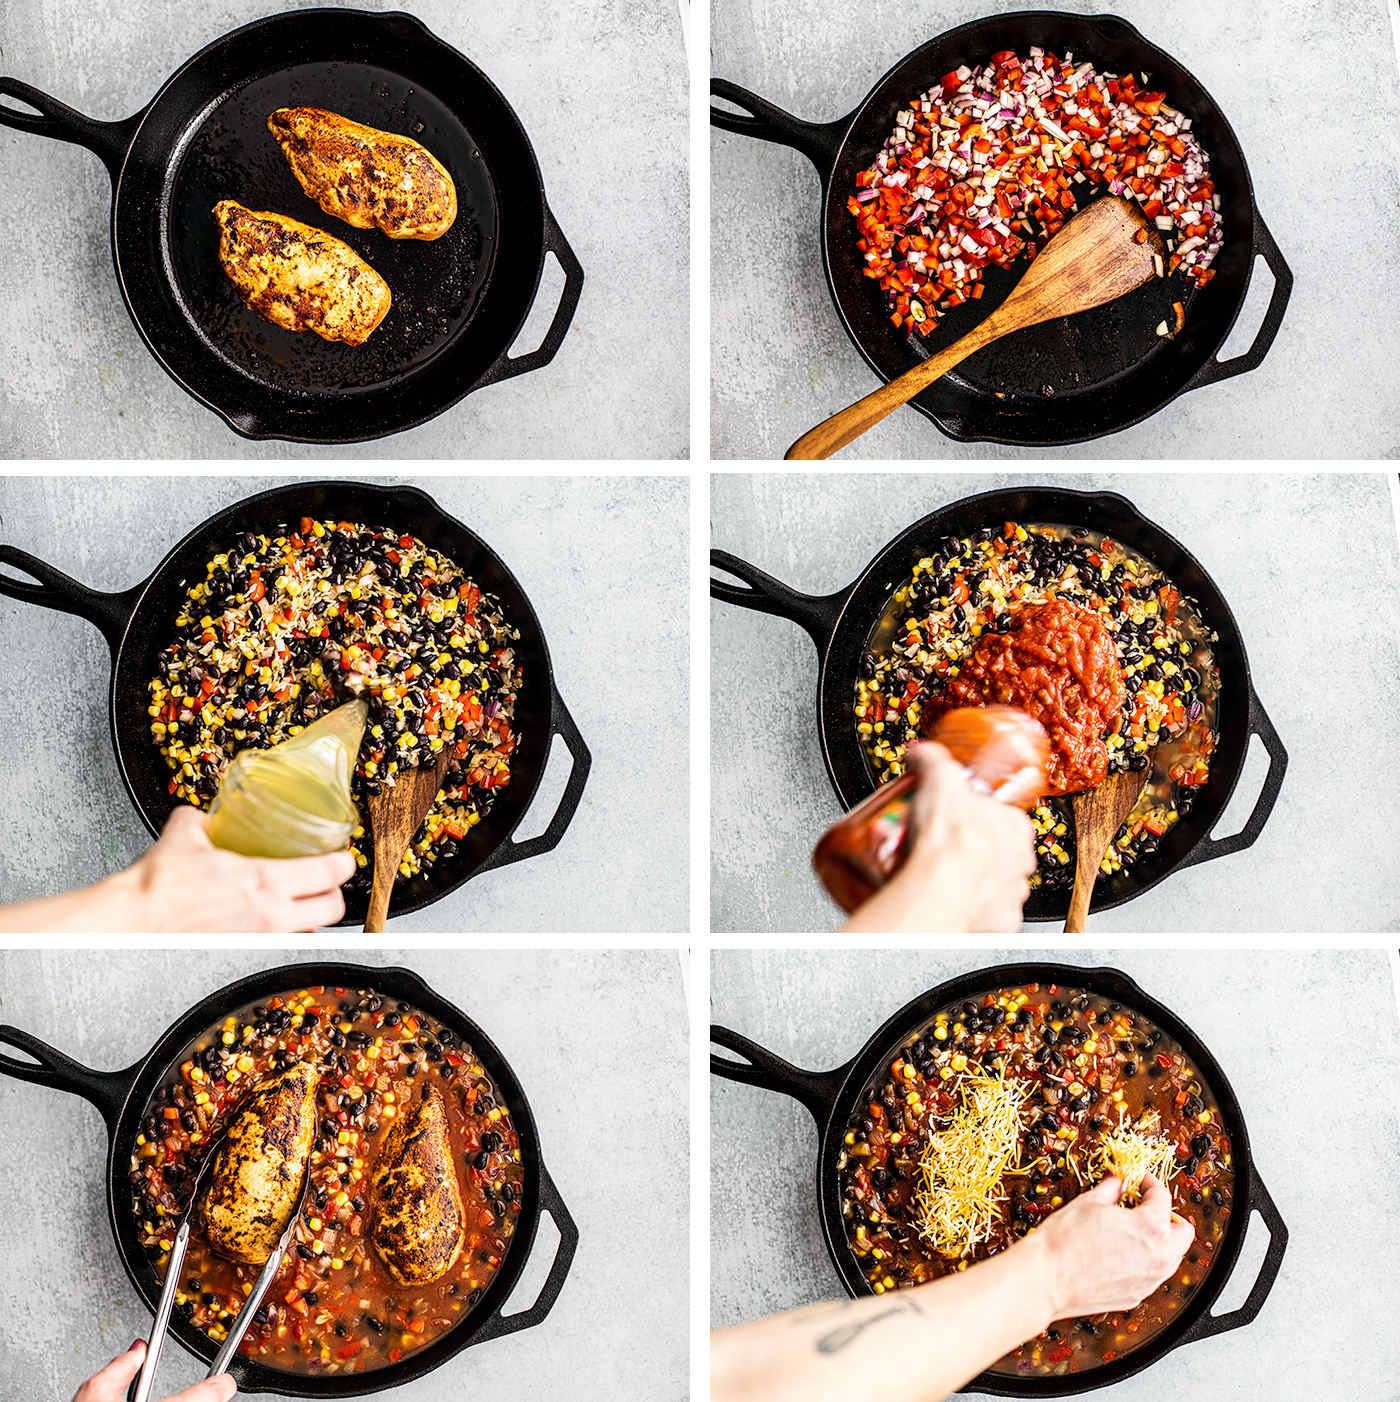 Process steps being shown for searing chicken and simmering vegetables.